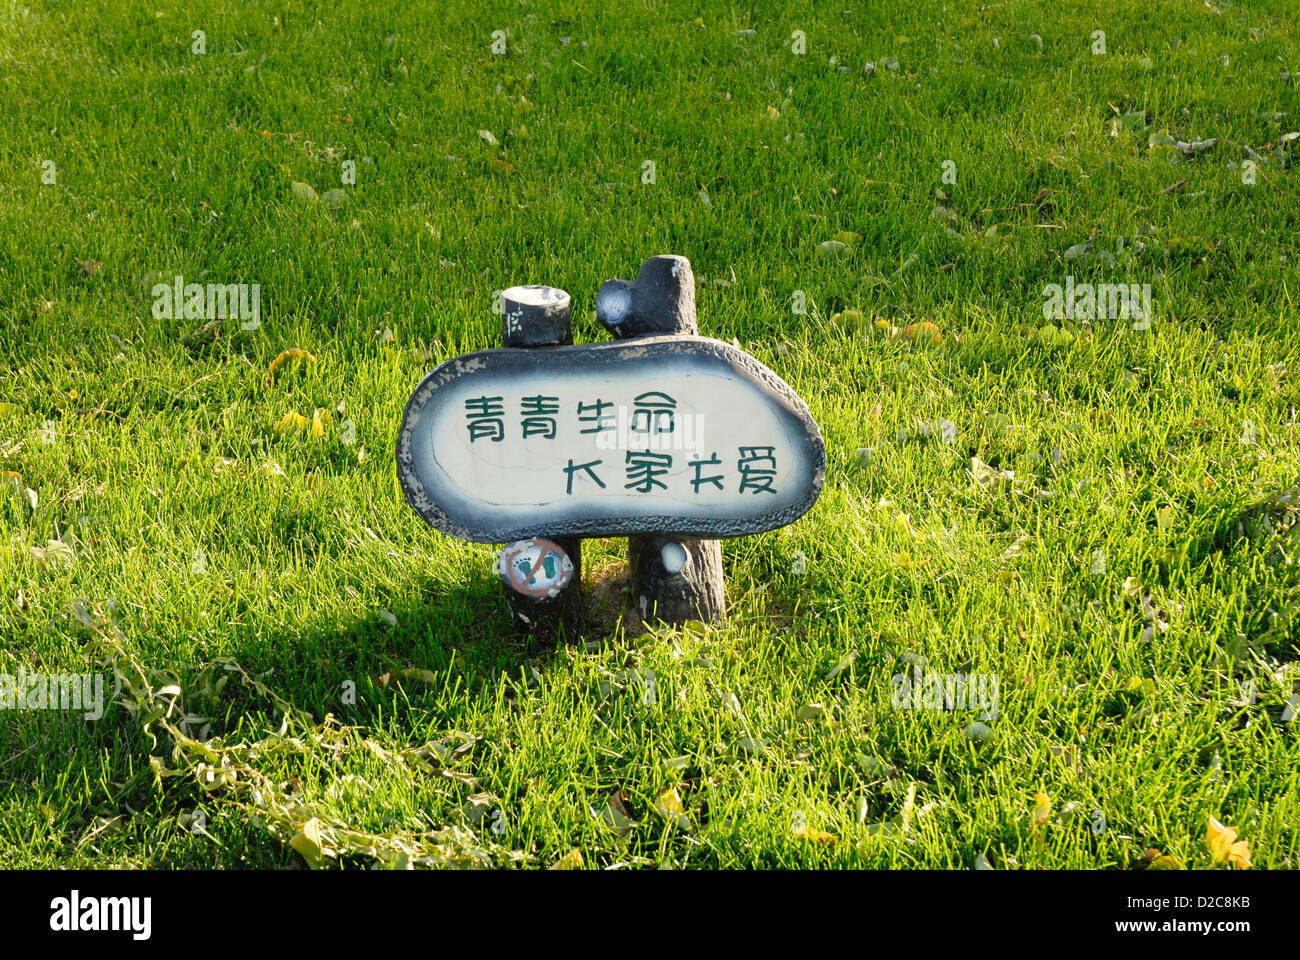 Don'T Walk On The Grass Sign In Chinese - Stock Image